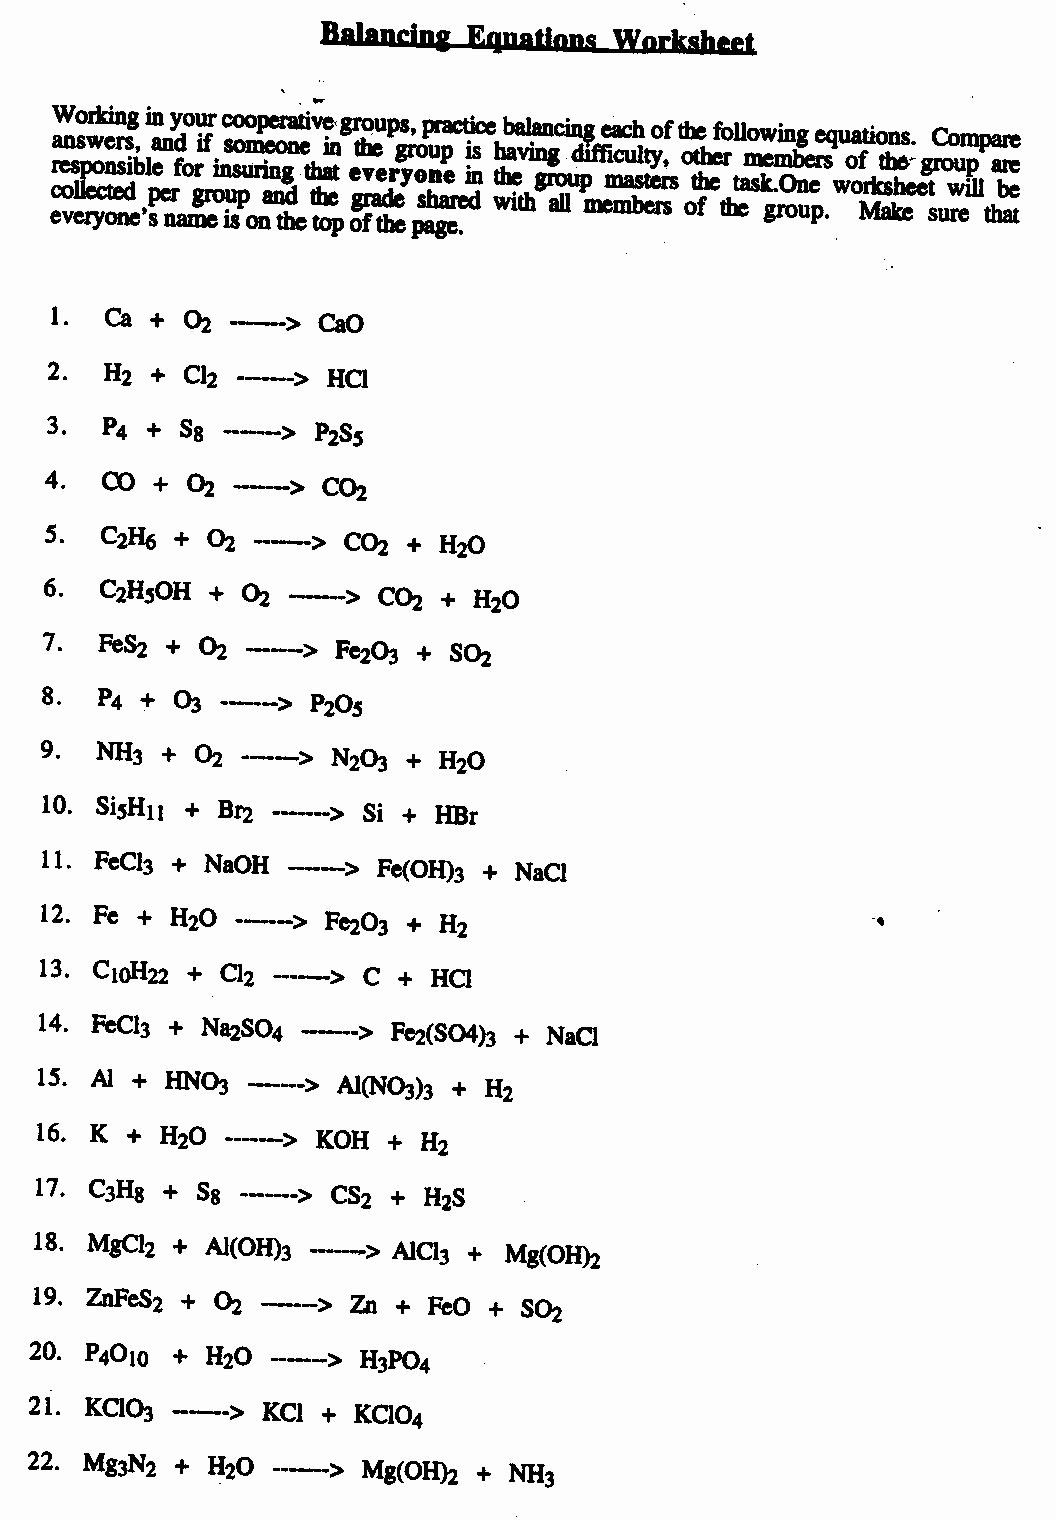 Balancing Chemical Equation Worksheet Inspirational 12